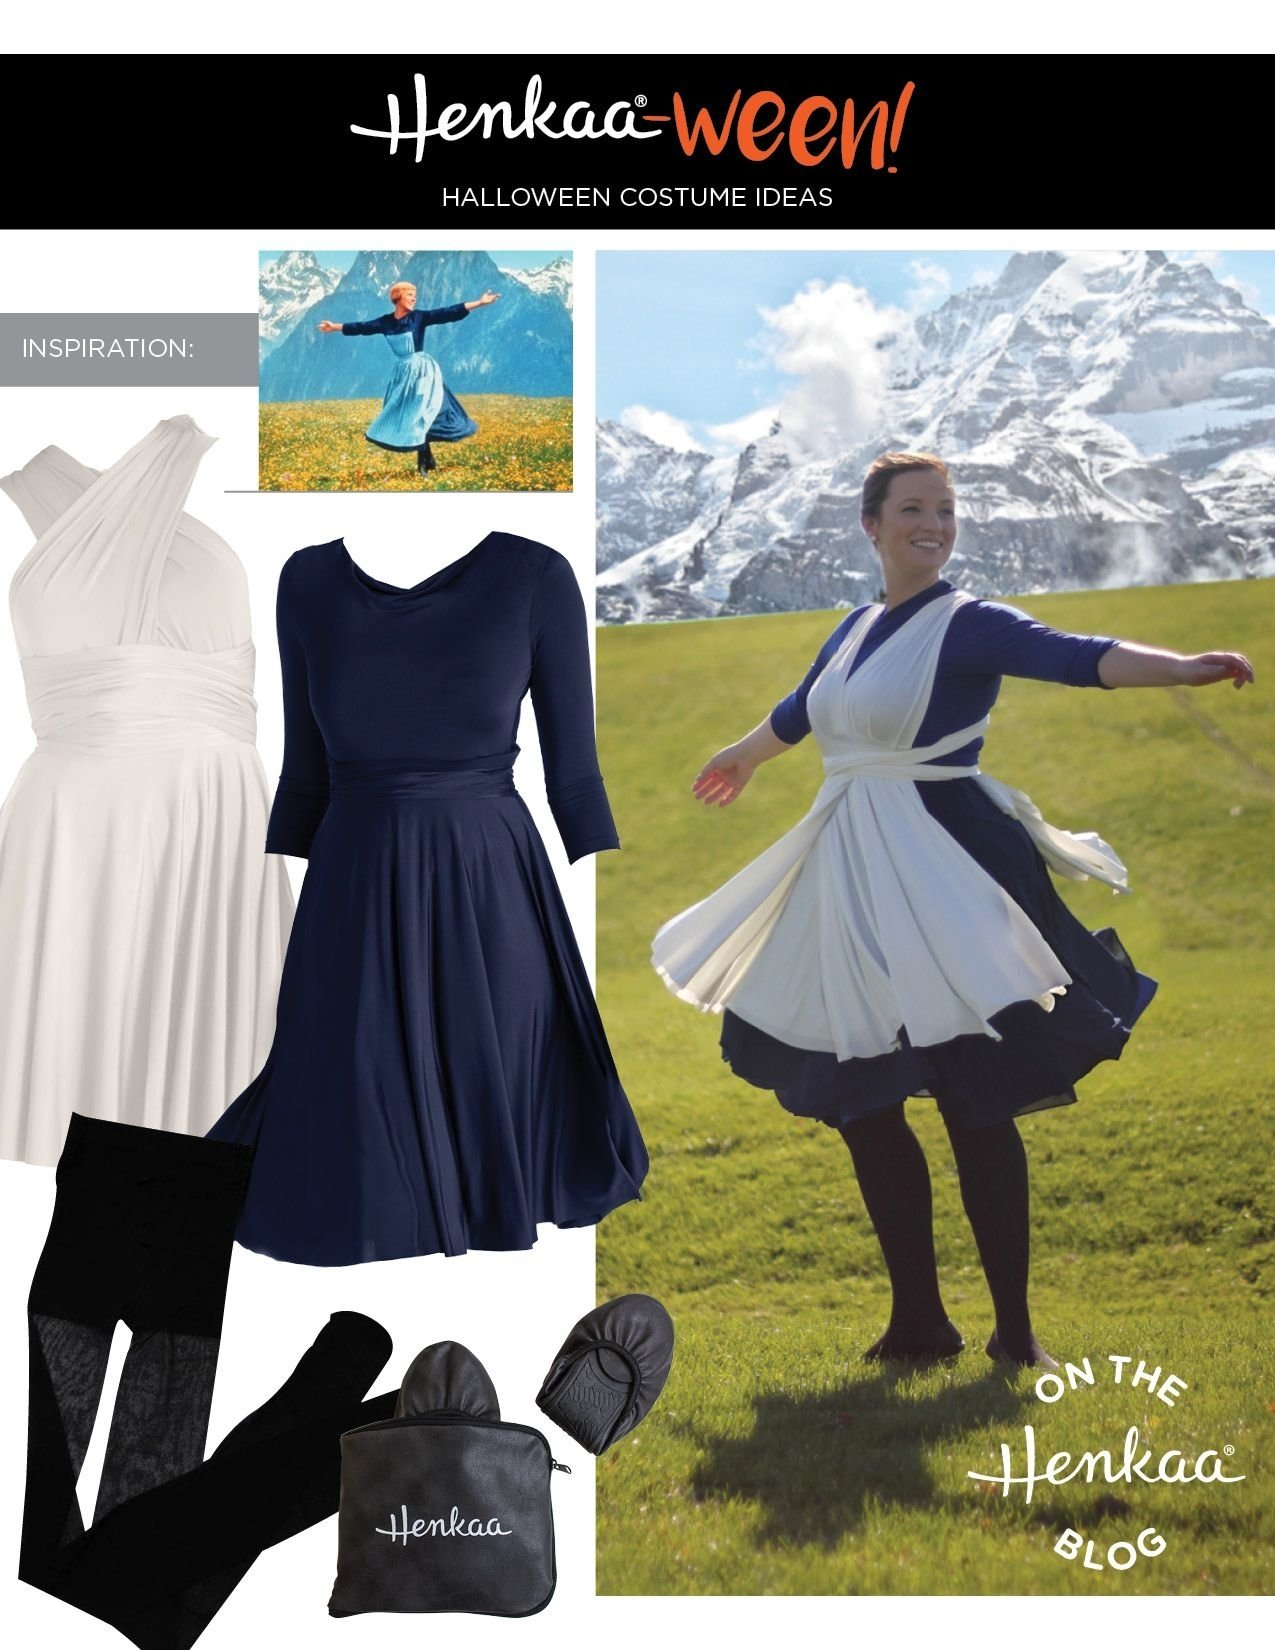 10 Most Recommended Sound Of Music Costume Ideas sound of music maria costume halloween meme costumes and 2020